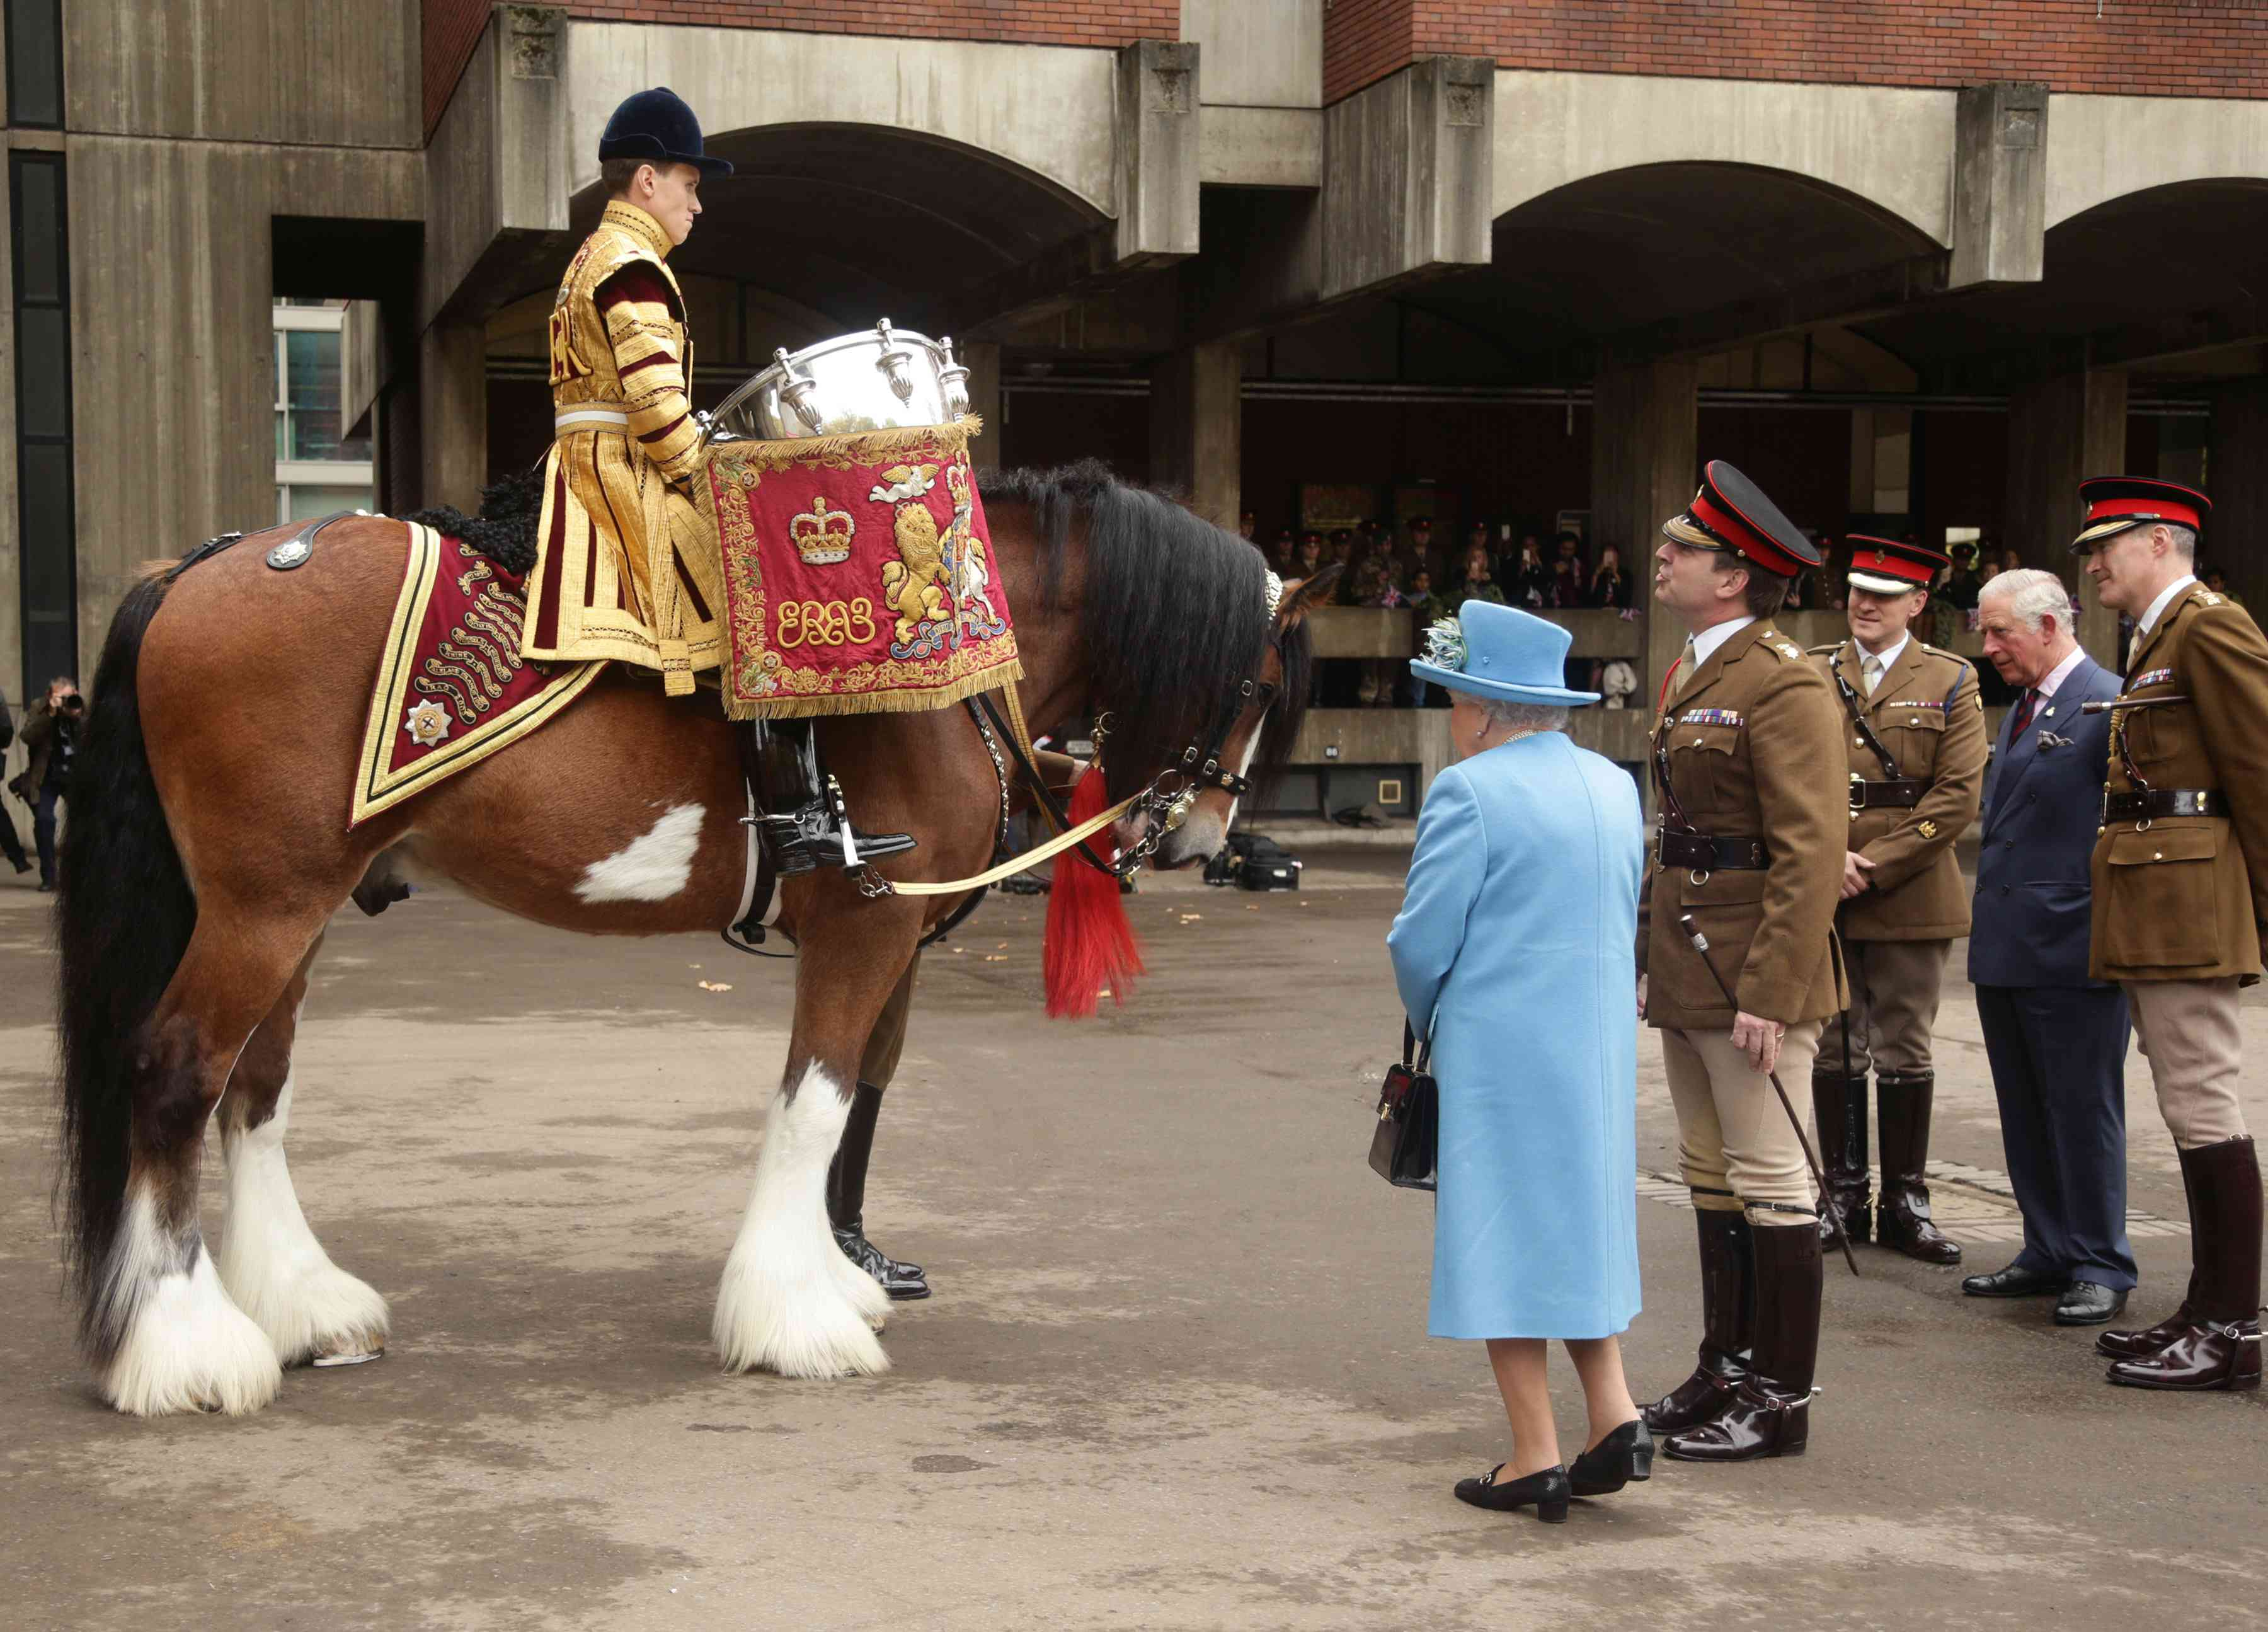 Bay Drum Horse being viewed by the Queen after a procession